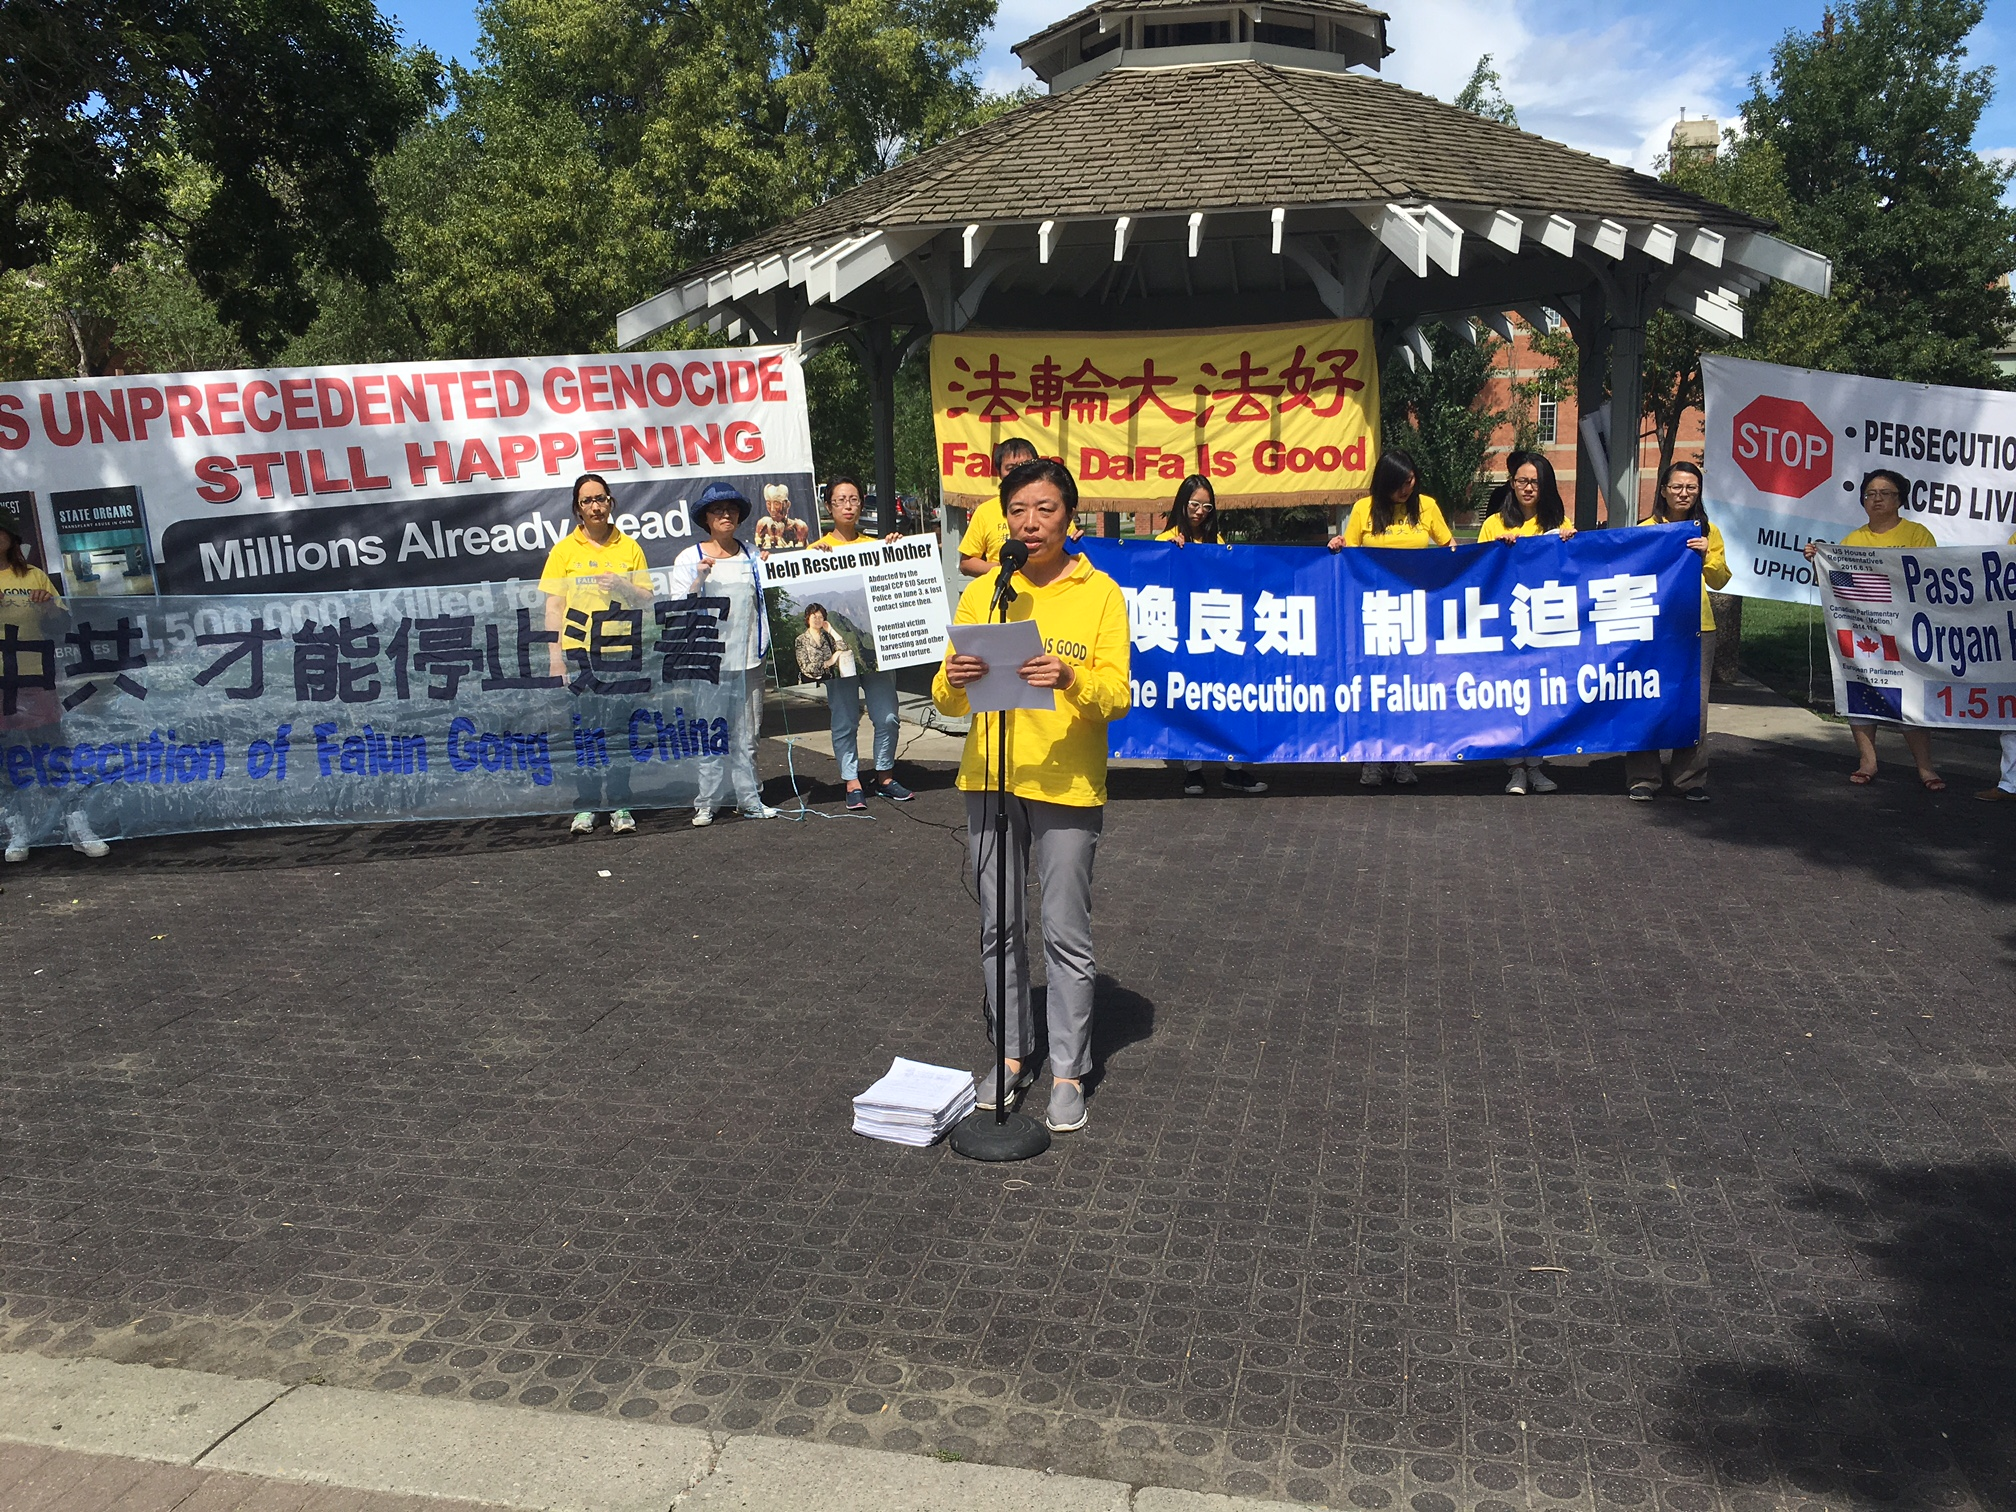 Minnan Liu speaks at a rally in Edmonton on July 23, 2016  to commemorate the 17th anniversary of the persecution of Falun Dafa in China. Liu presented the over 9,000 petitions signed by Edmontonians since last year to bring to justice the former Chinese leader Jiang Zemin who started the persecution on July 20, 1999. Behind her Hongyan Lu holds a sign asking for support to release her mother, Huixia Chen, who is currently detained in China for practicing Falun Dafa.  (Omid Ghoreishi/Epoch Times)